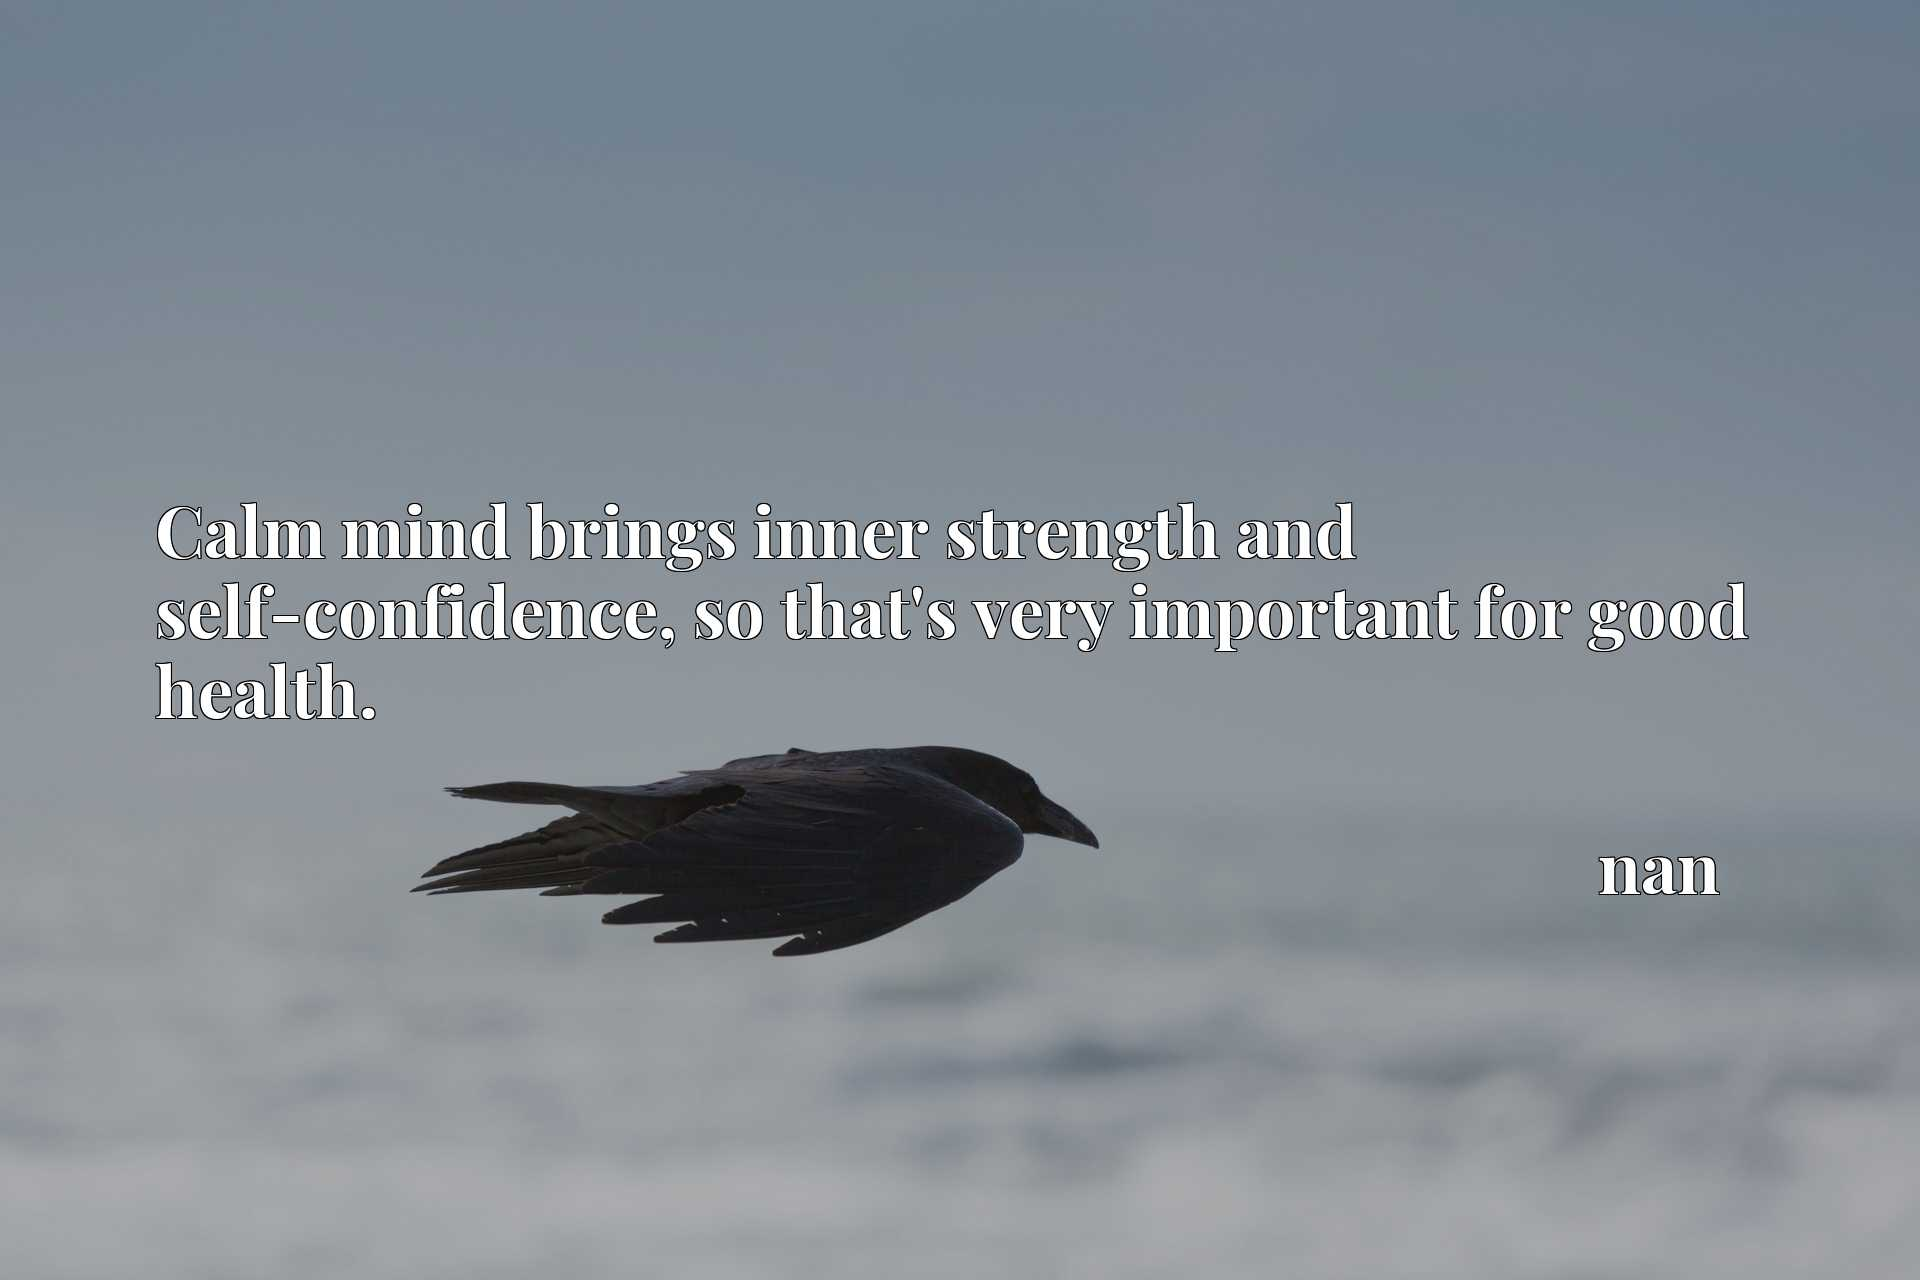 Calm mind brings inner strength and self-confidence, so that's very important for good health.